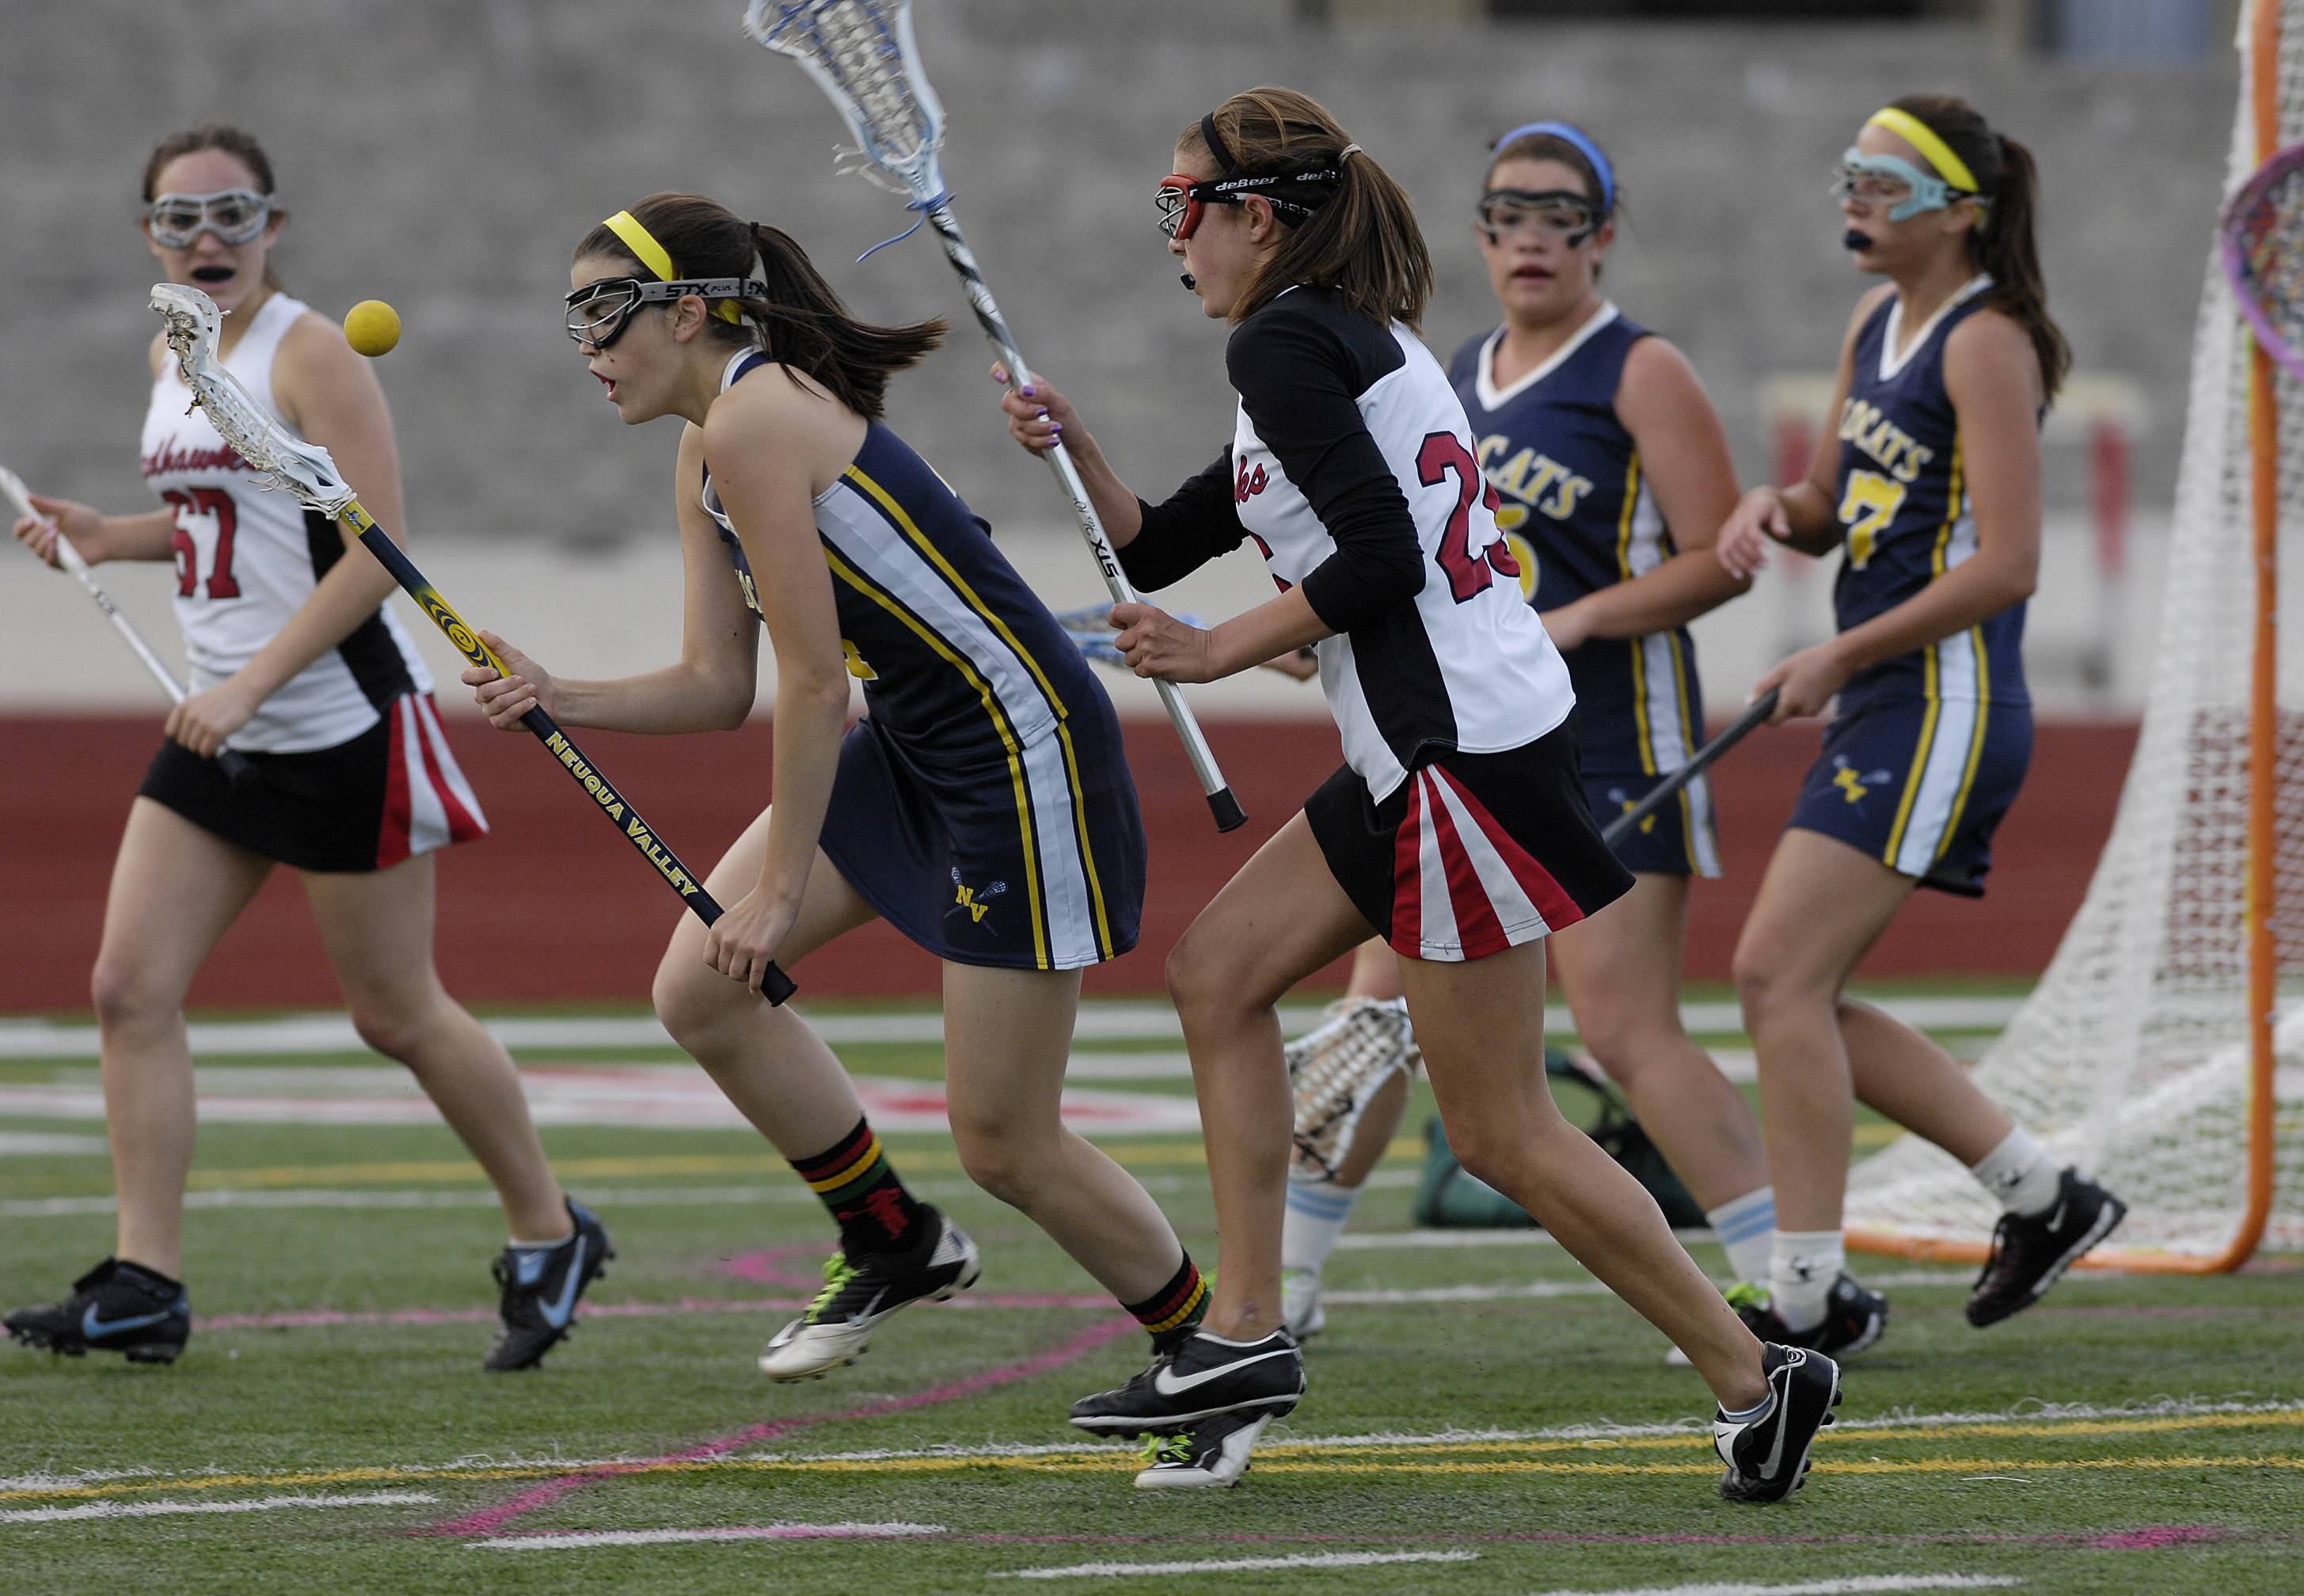 Coaches push for girls' lacrosse programs at U-46 high schools